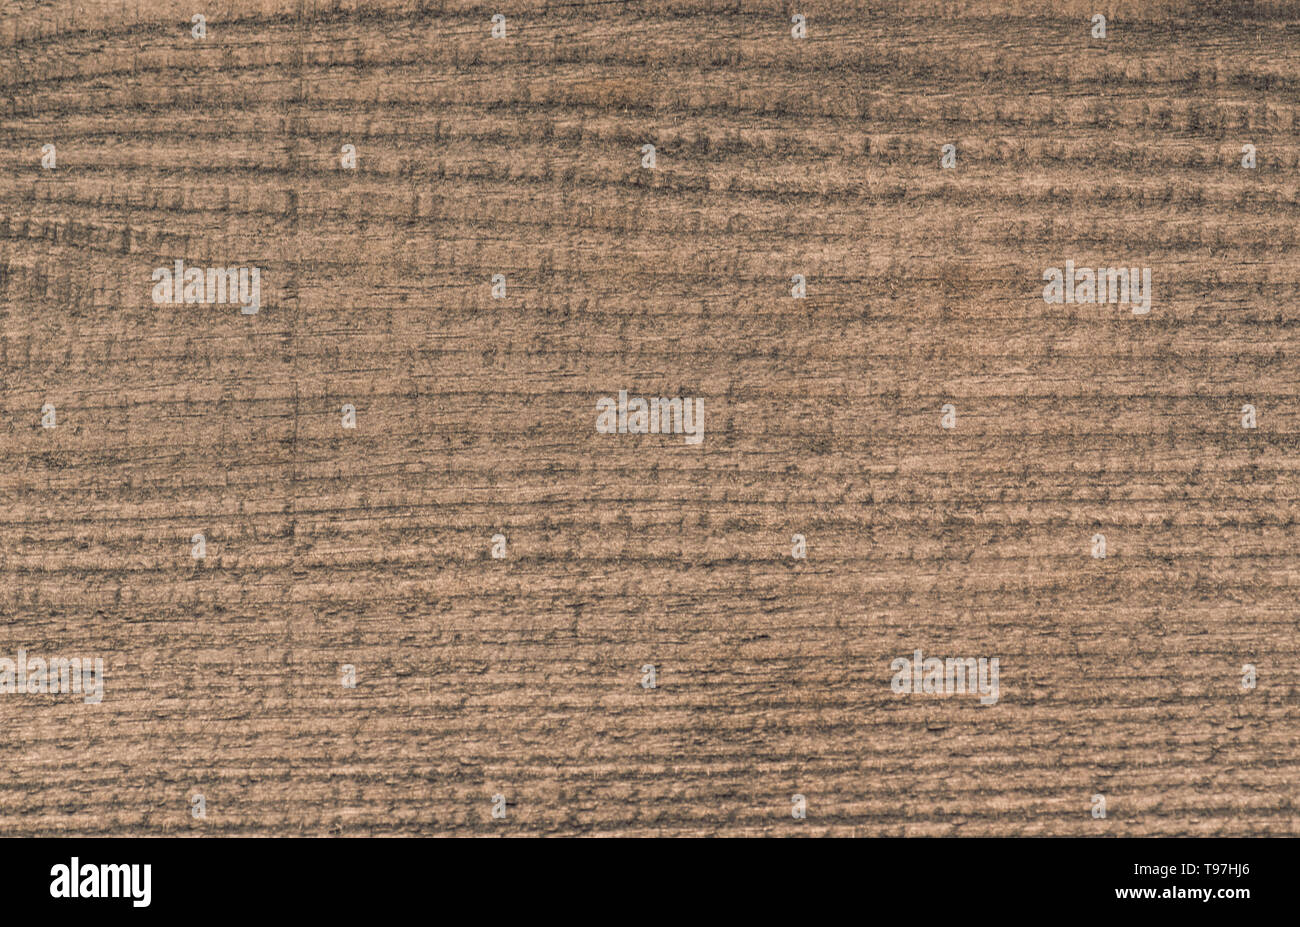 background texture of old wooden plank with stripes and scratches - Stock Image